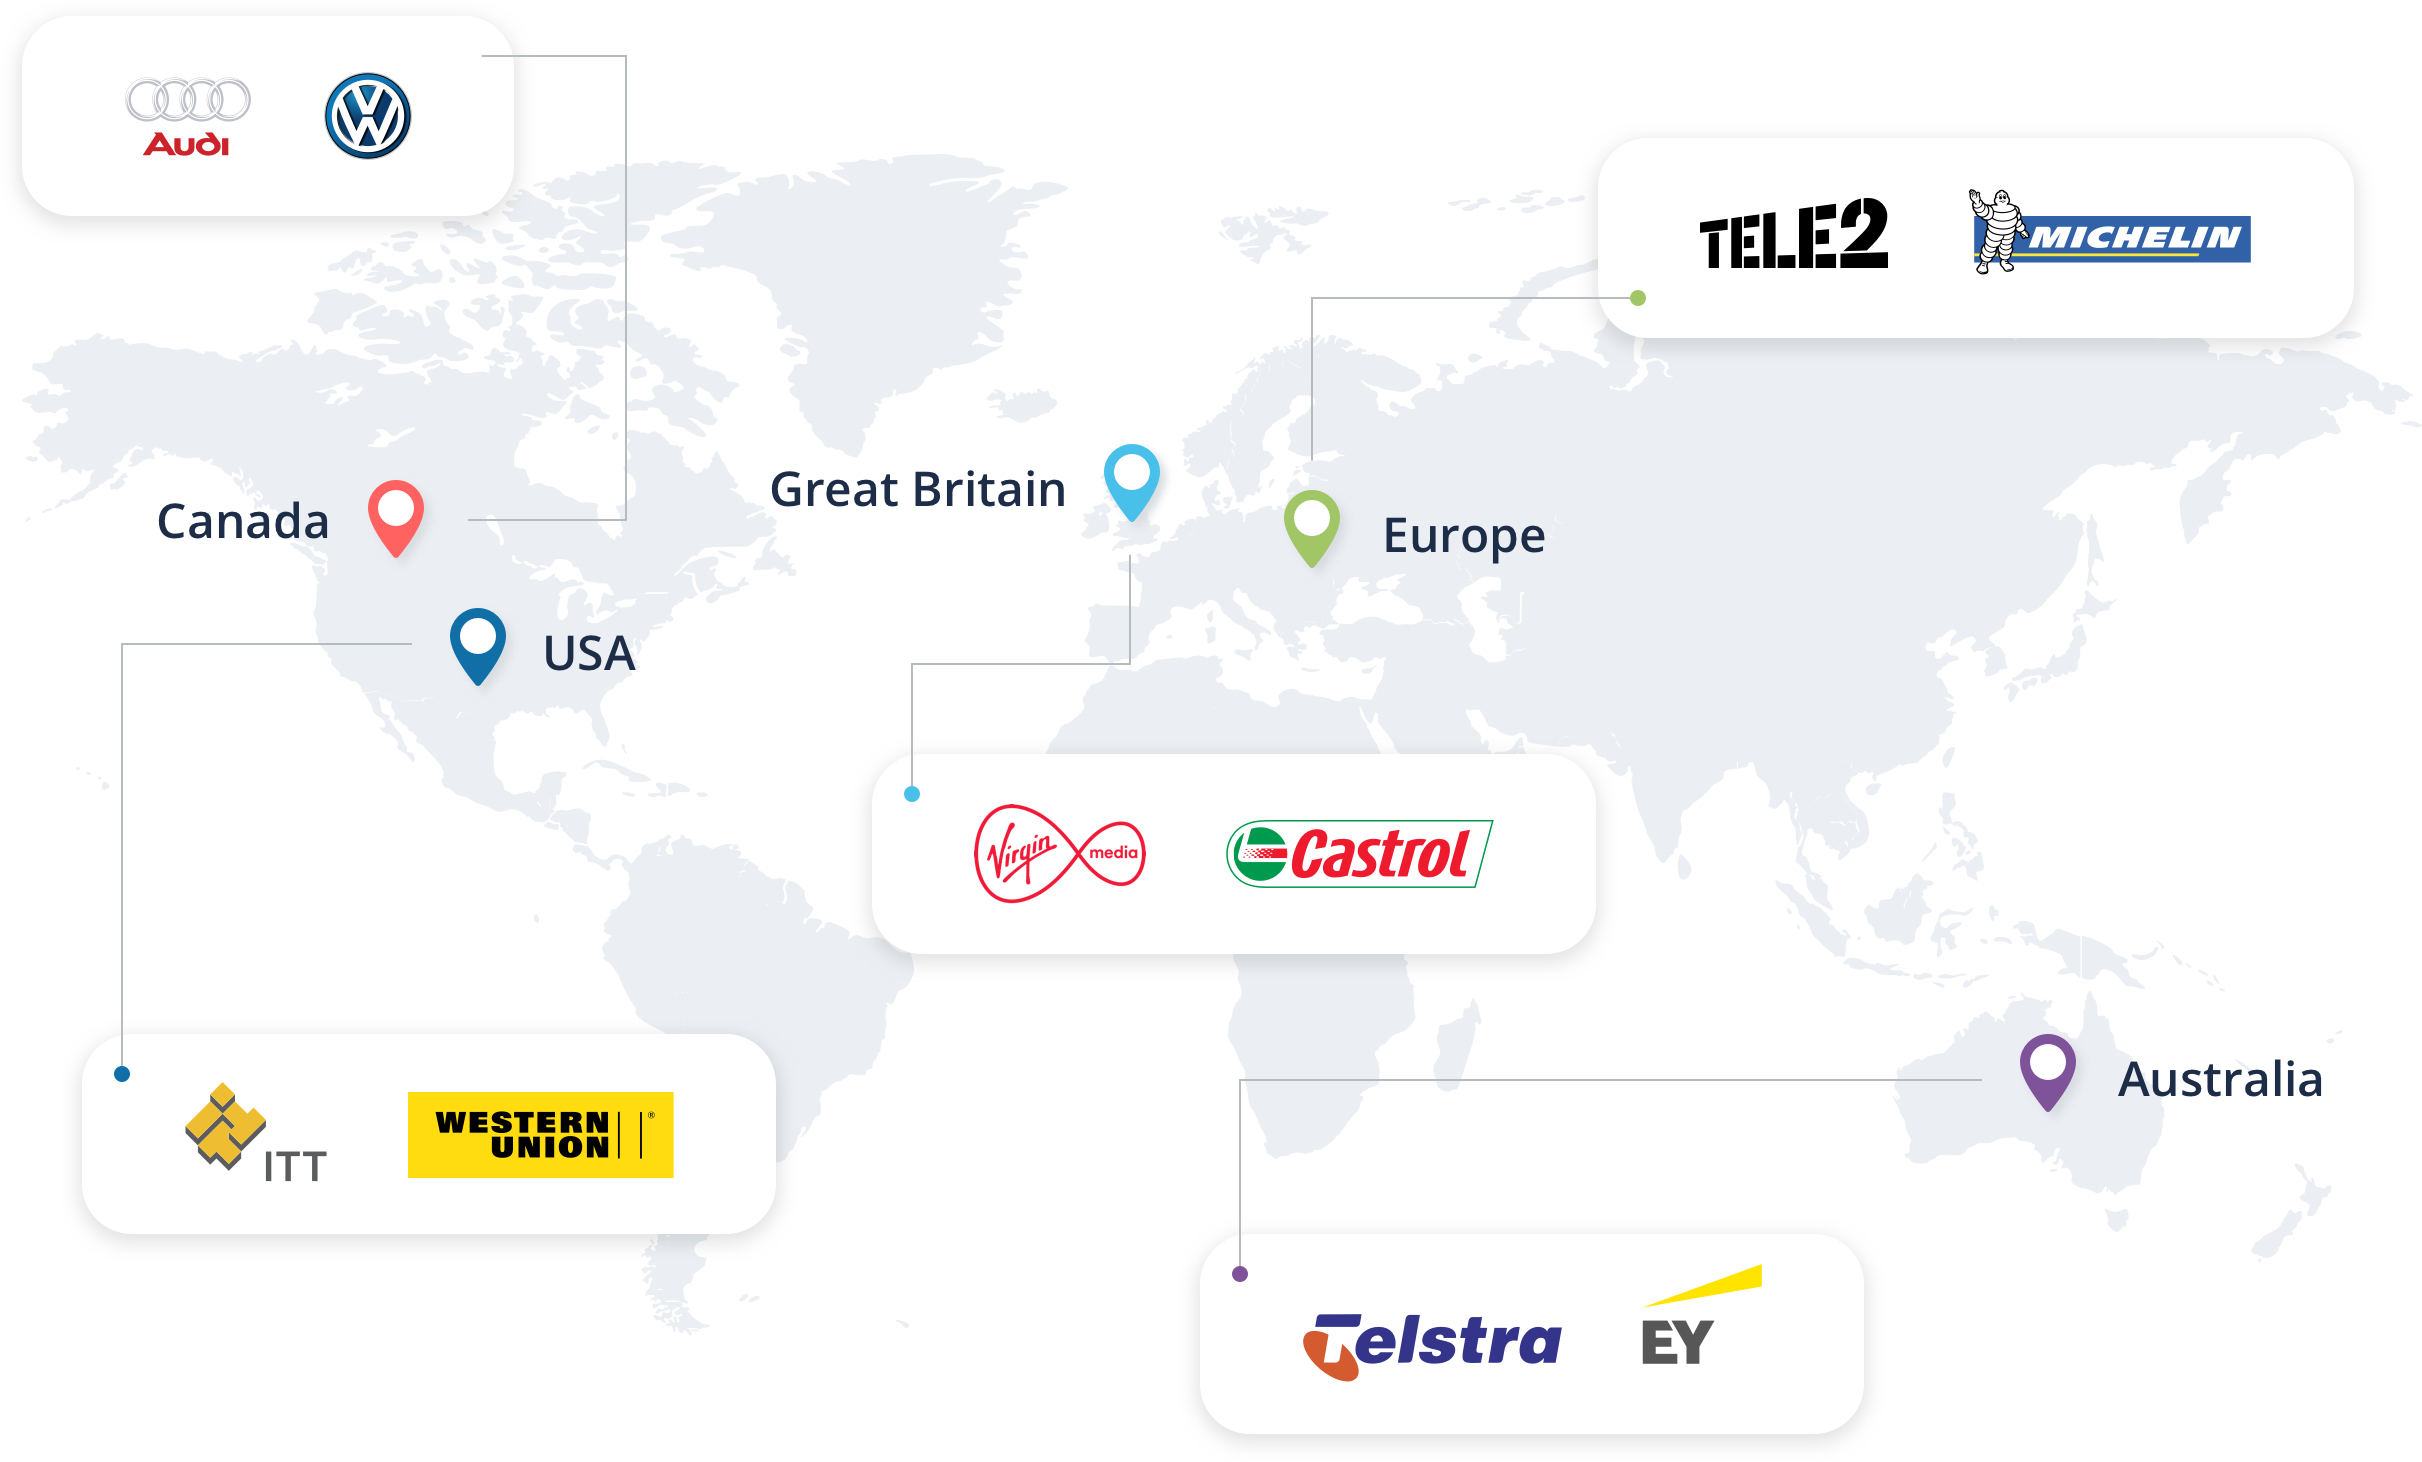 audi, volkswagen, tele2, michelin, castrol, virgin media, itt-industries, western union, telstra, ernst young ey